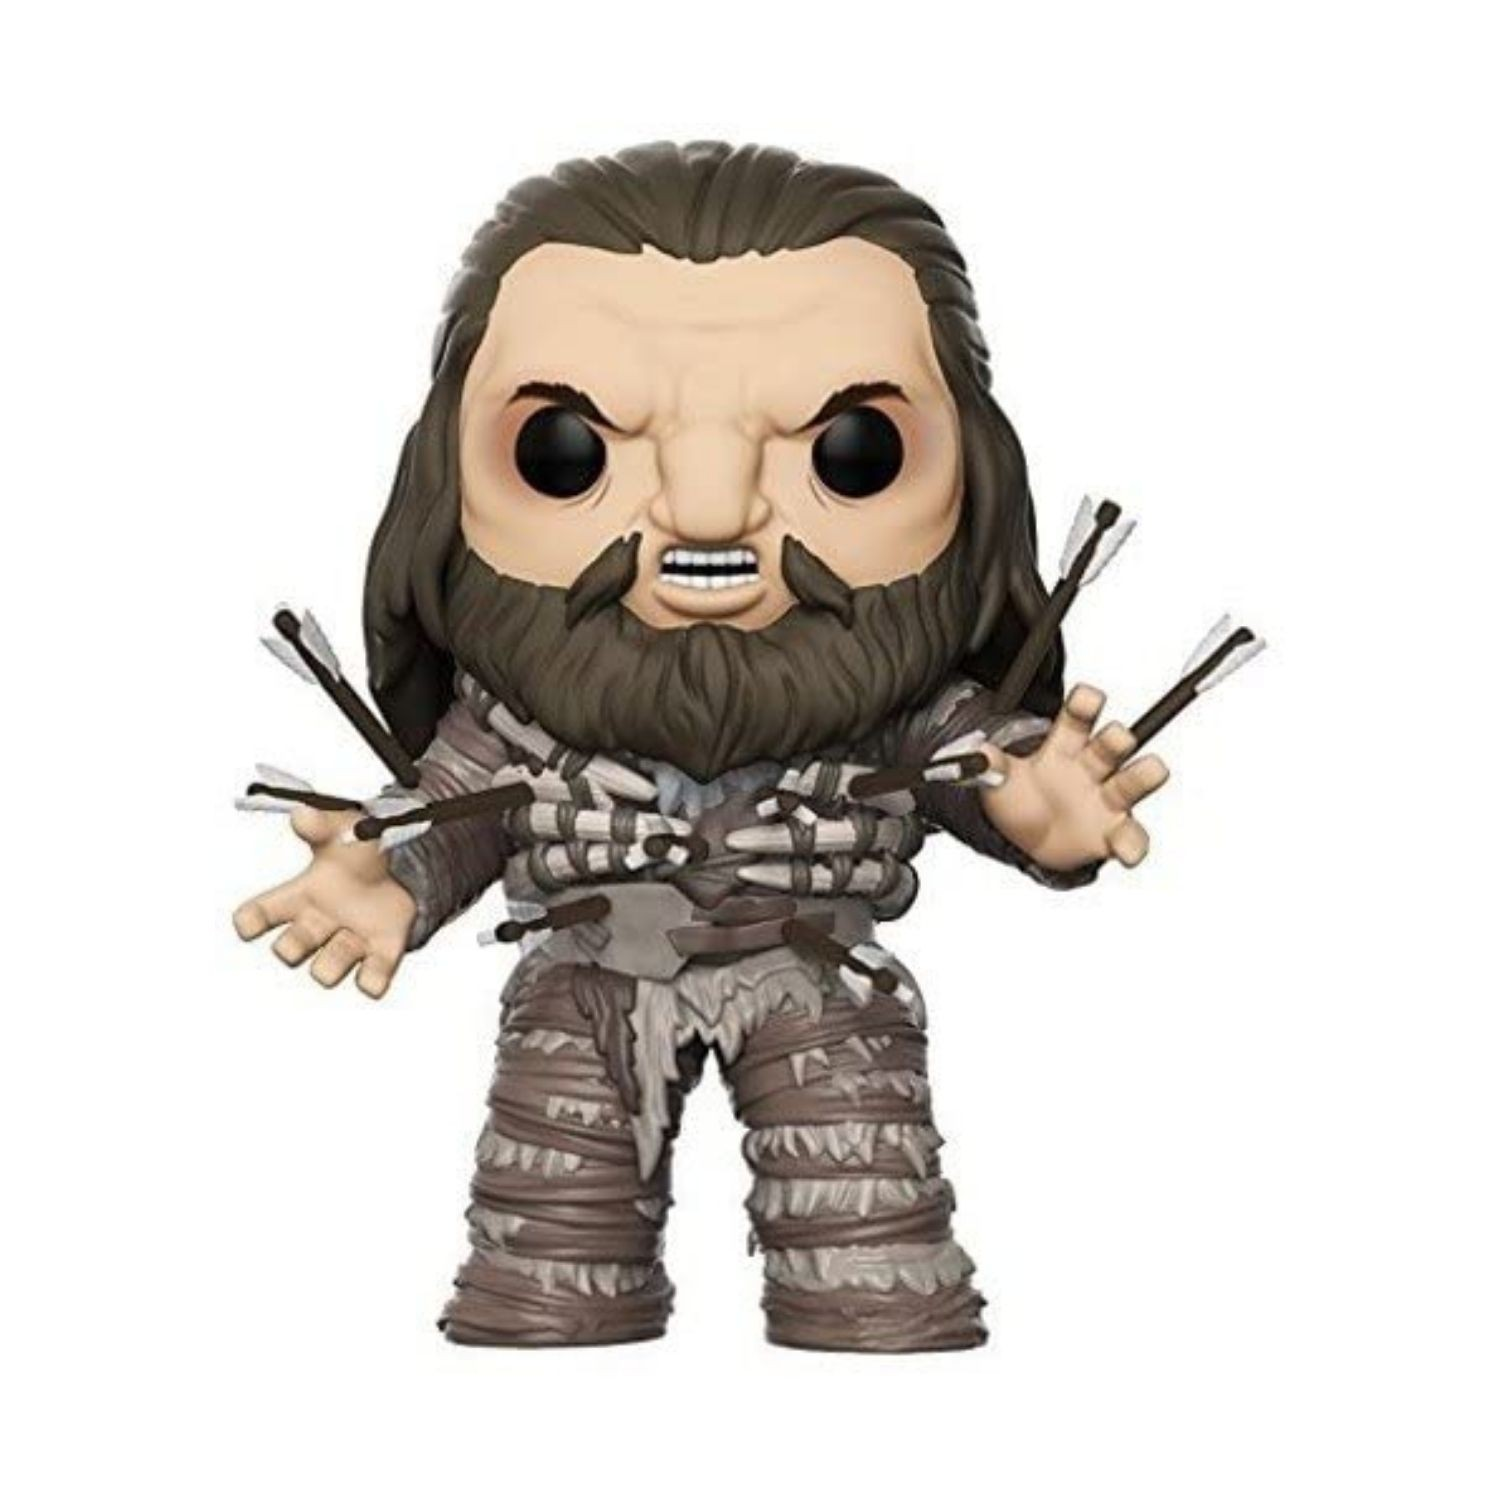 Funko Pop! Game Of Thrones - Wun Wun #55 Super Sized - Game Land Brinquedos